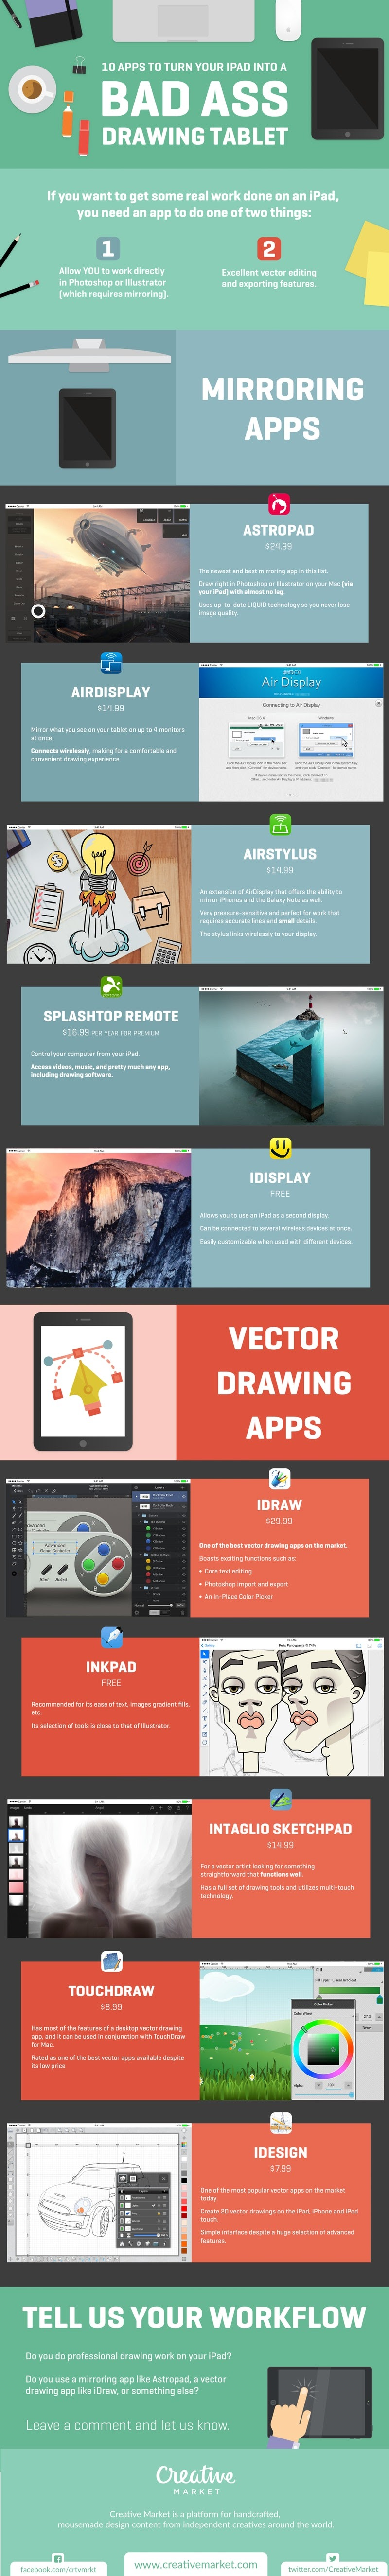 10 Apps to Turn Your iPad Into a Bad Ass Drawing - #infographic